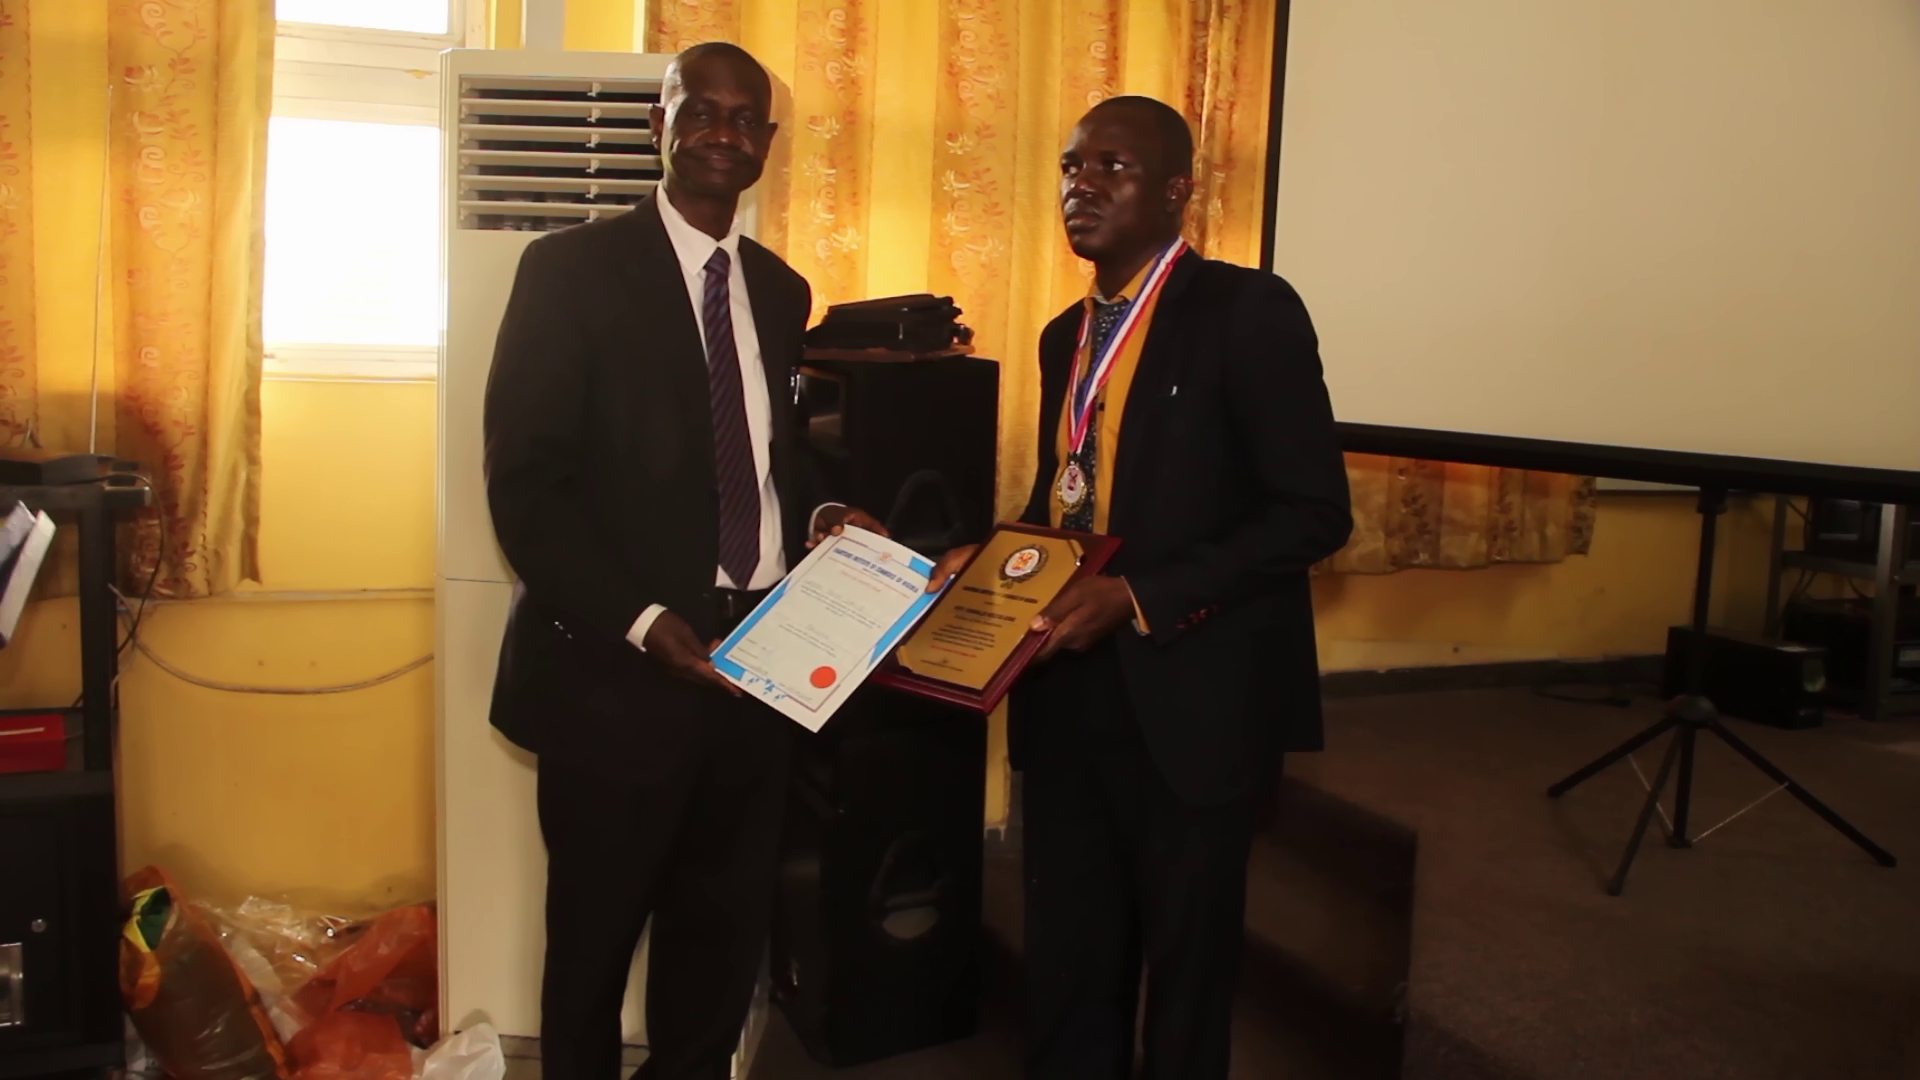 Dr Ajayi one of the faculty member of the Institute presented certificate to the newly inductee